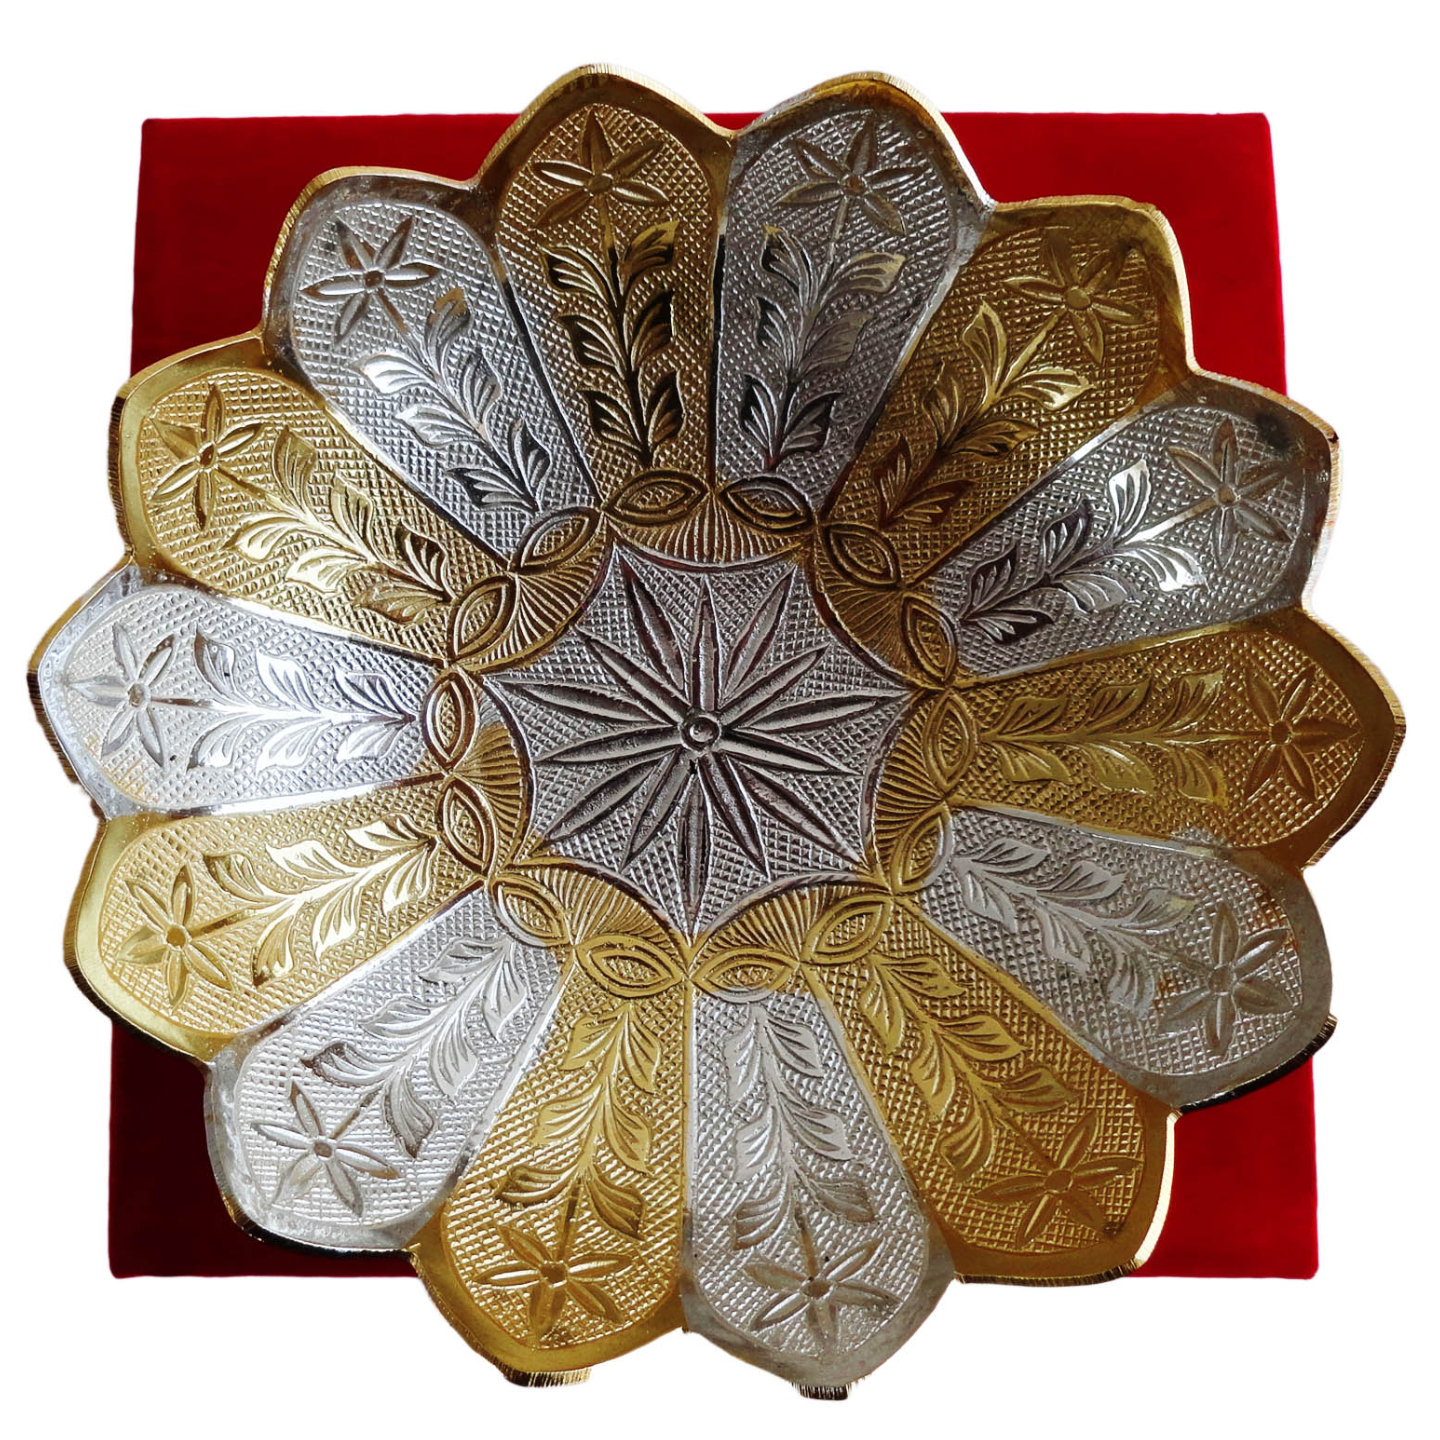 Brass Lotus Shape Bowl With Brass & Silver Finish - 7 Inch (B059)